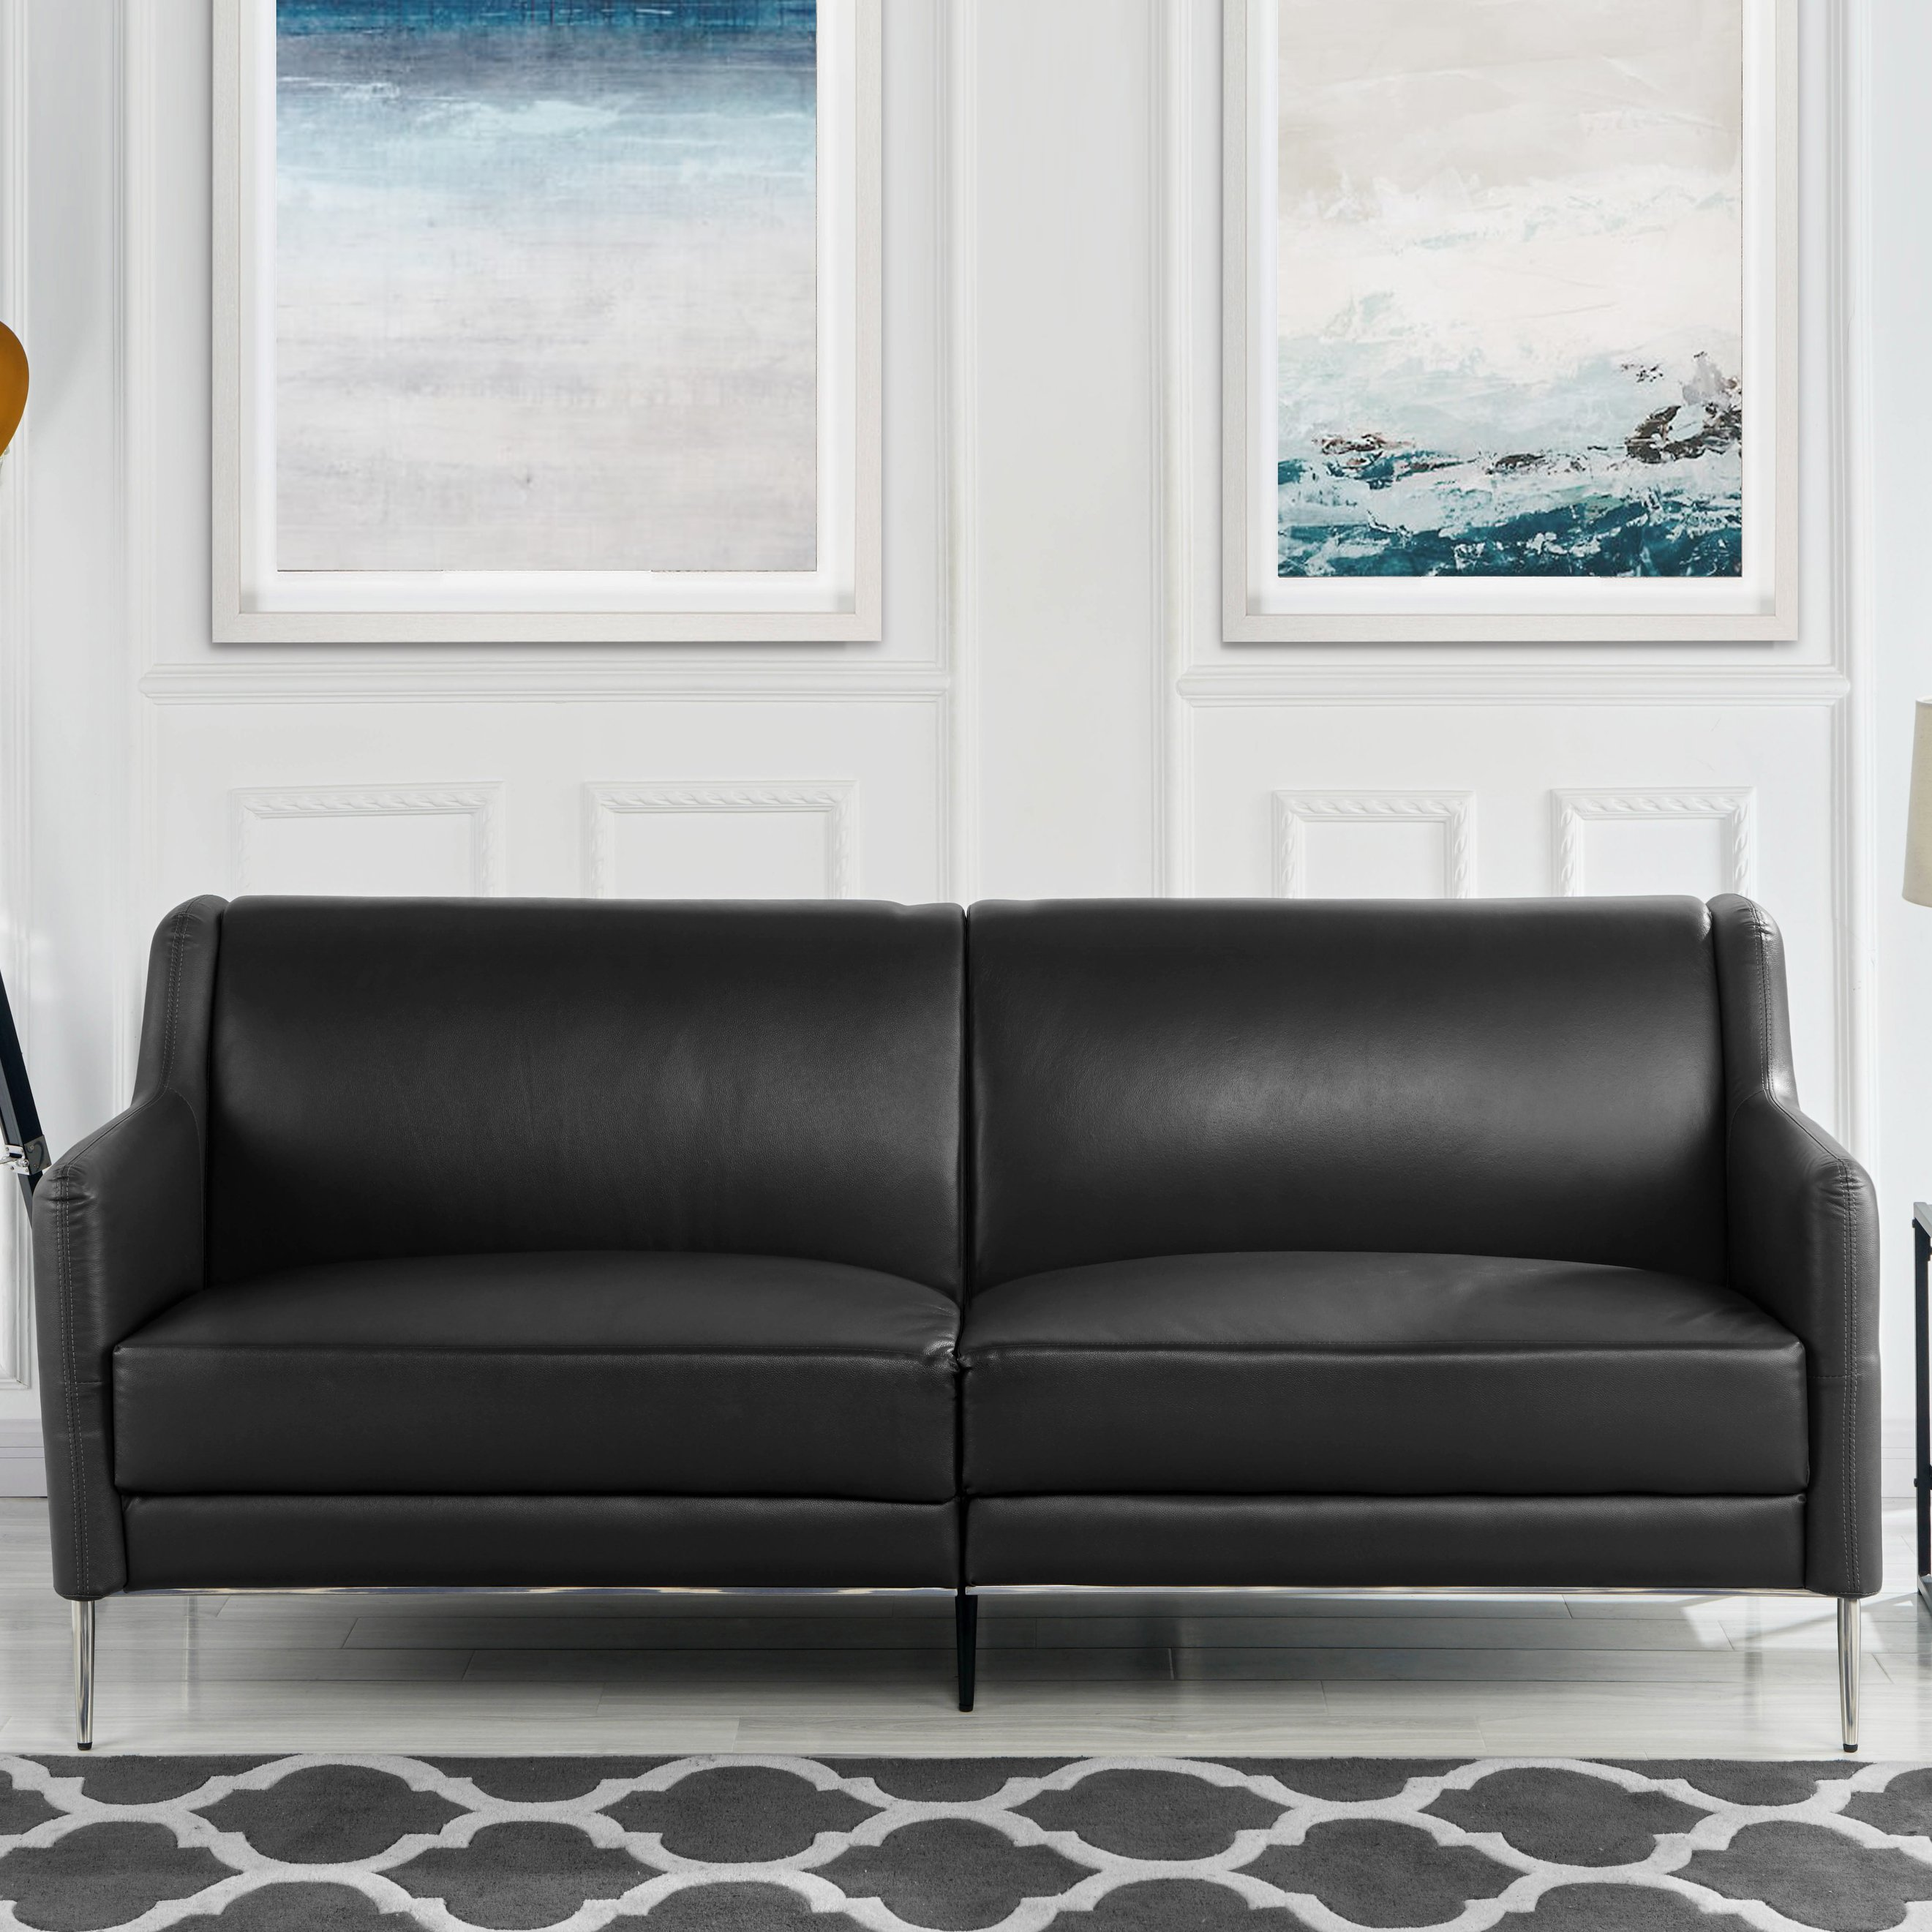 "Mid Century Leather Sofa 77.1"" inches, Sleek Simple Living Room Couch (Black)"